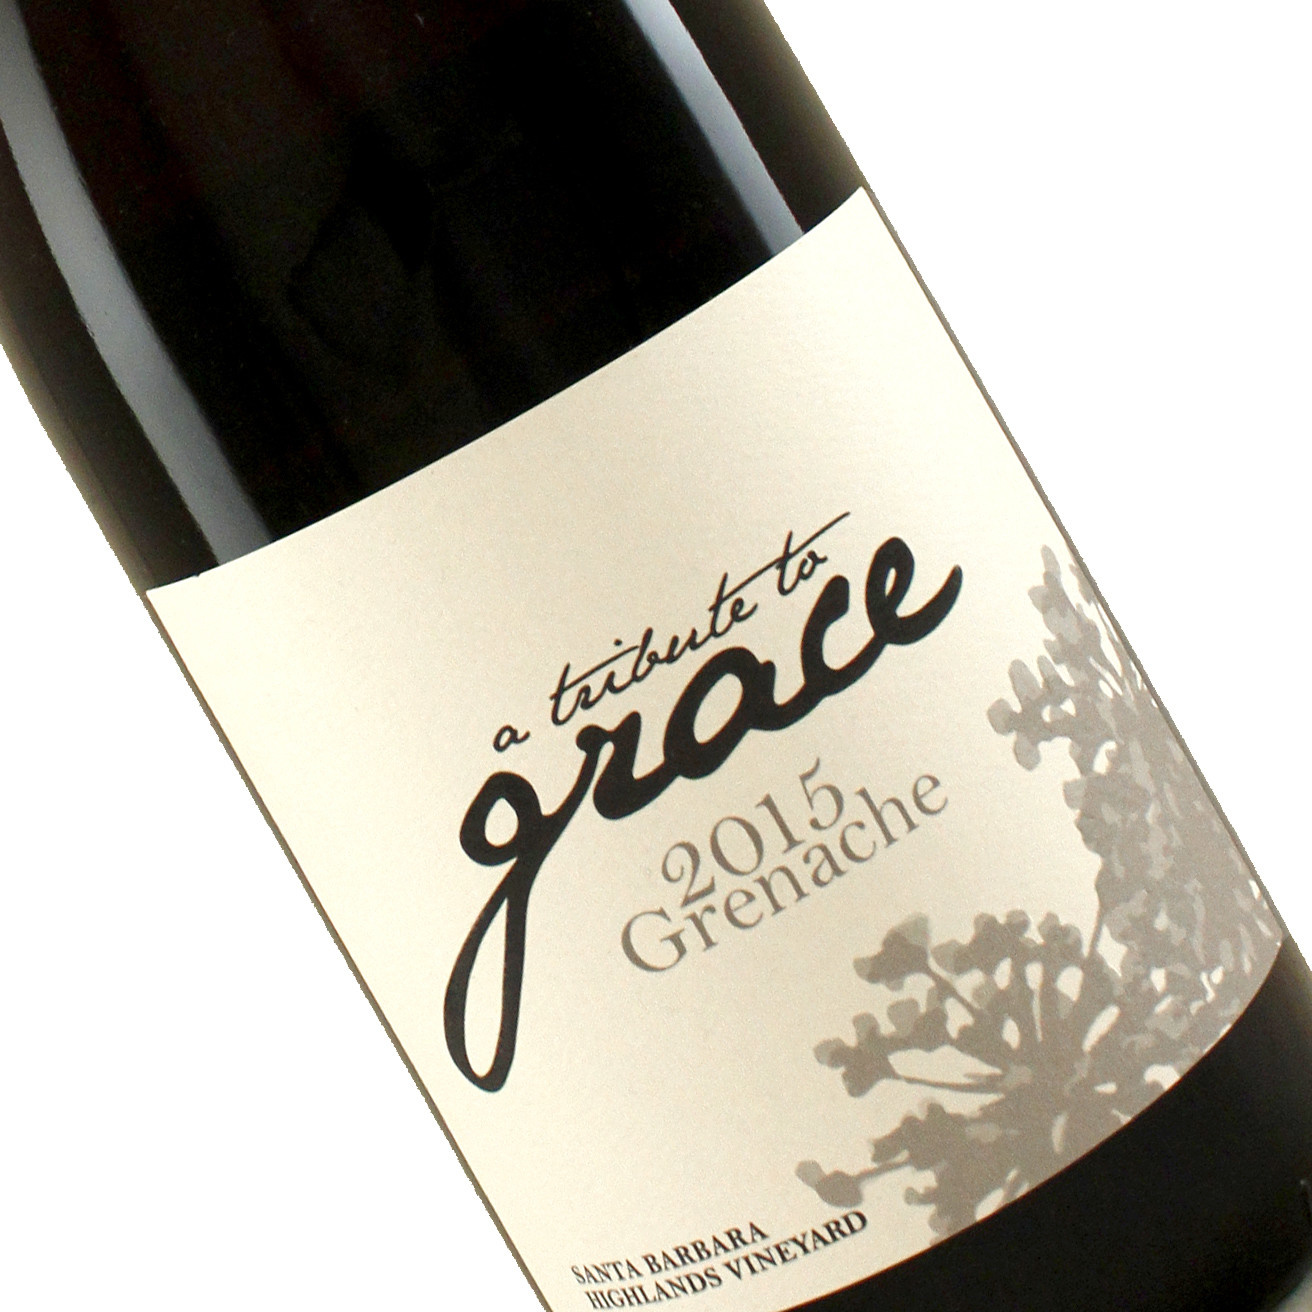 A Tribute to Grace 2015 Grenache, Santa Barbara Highlands